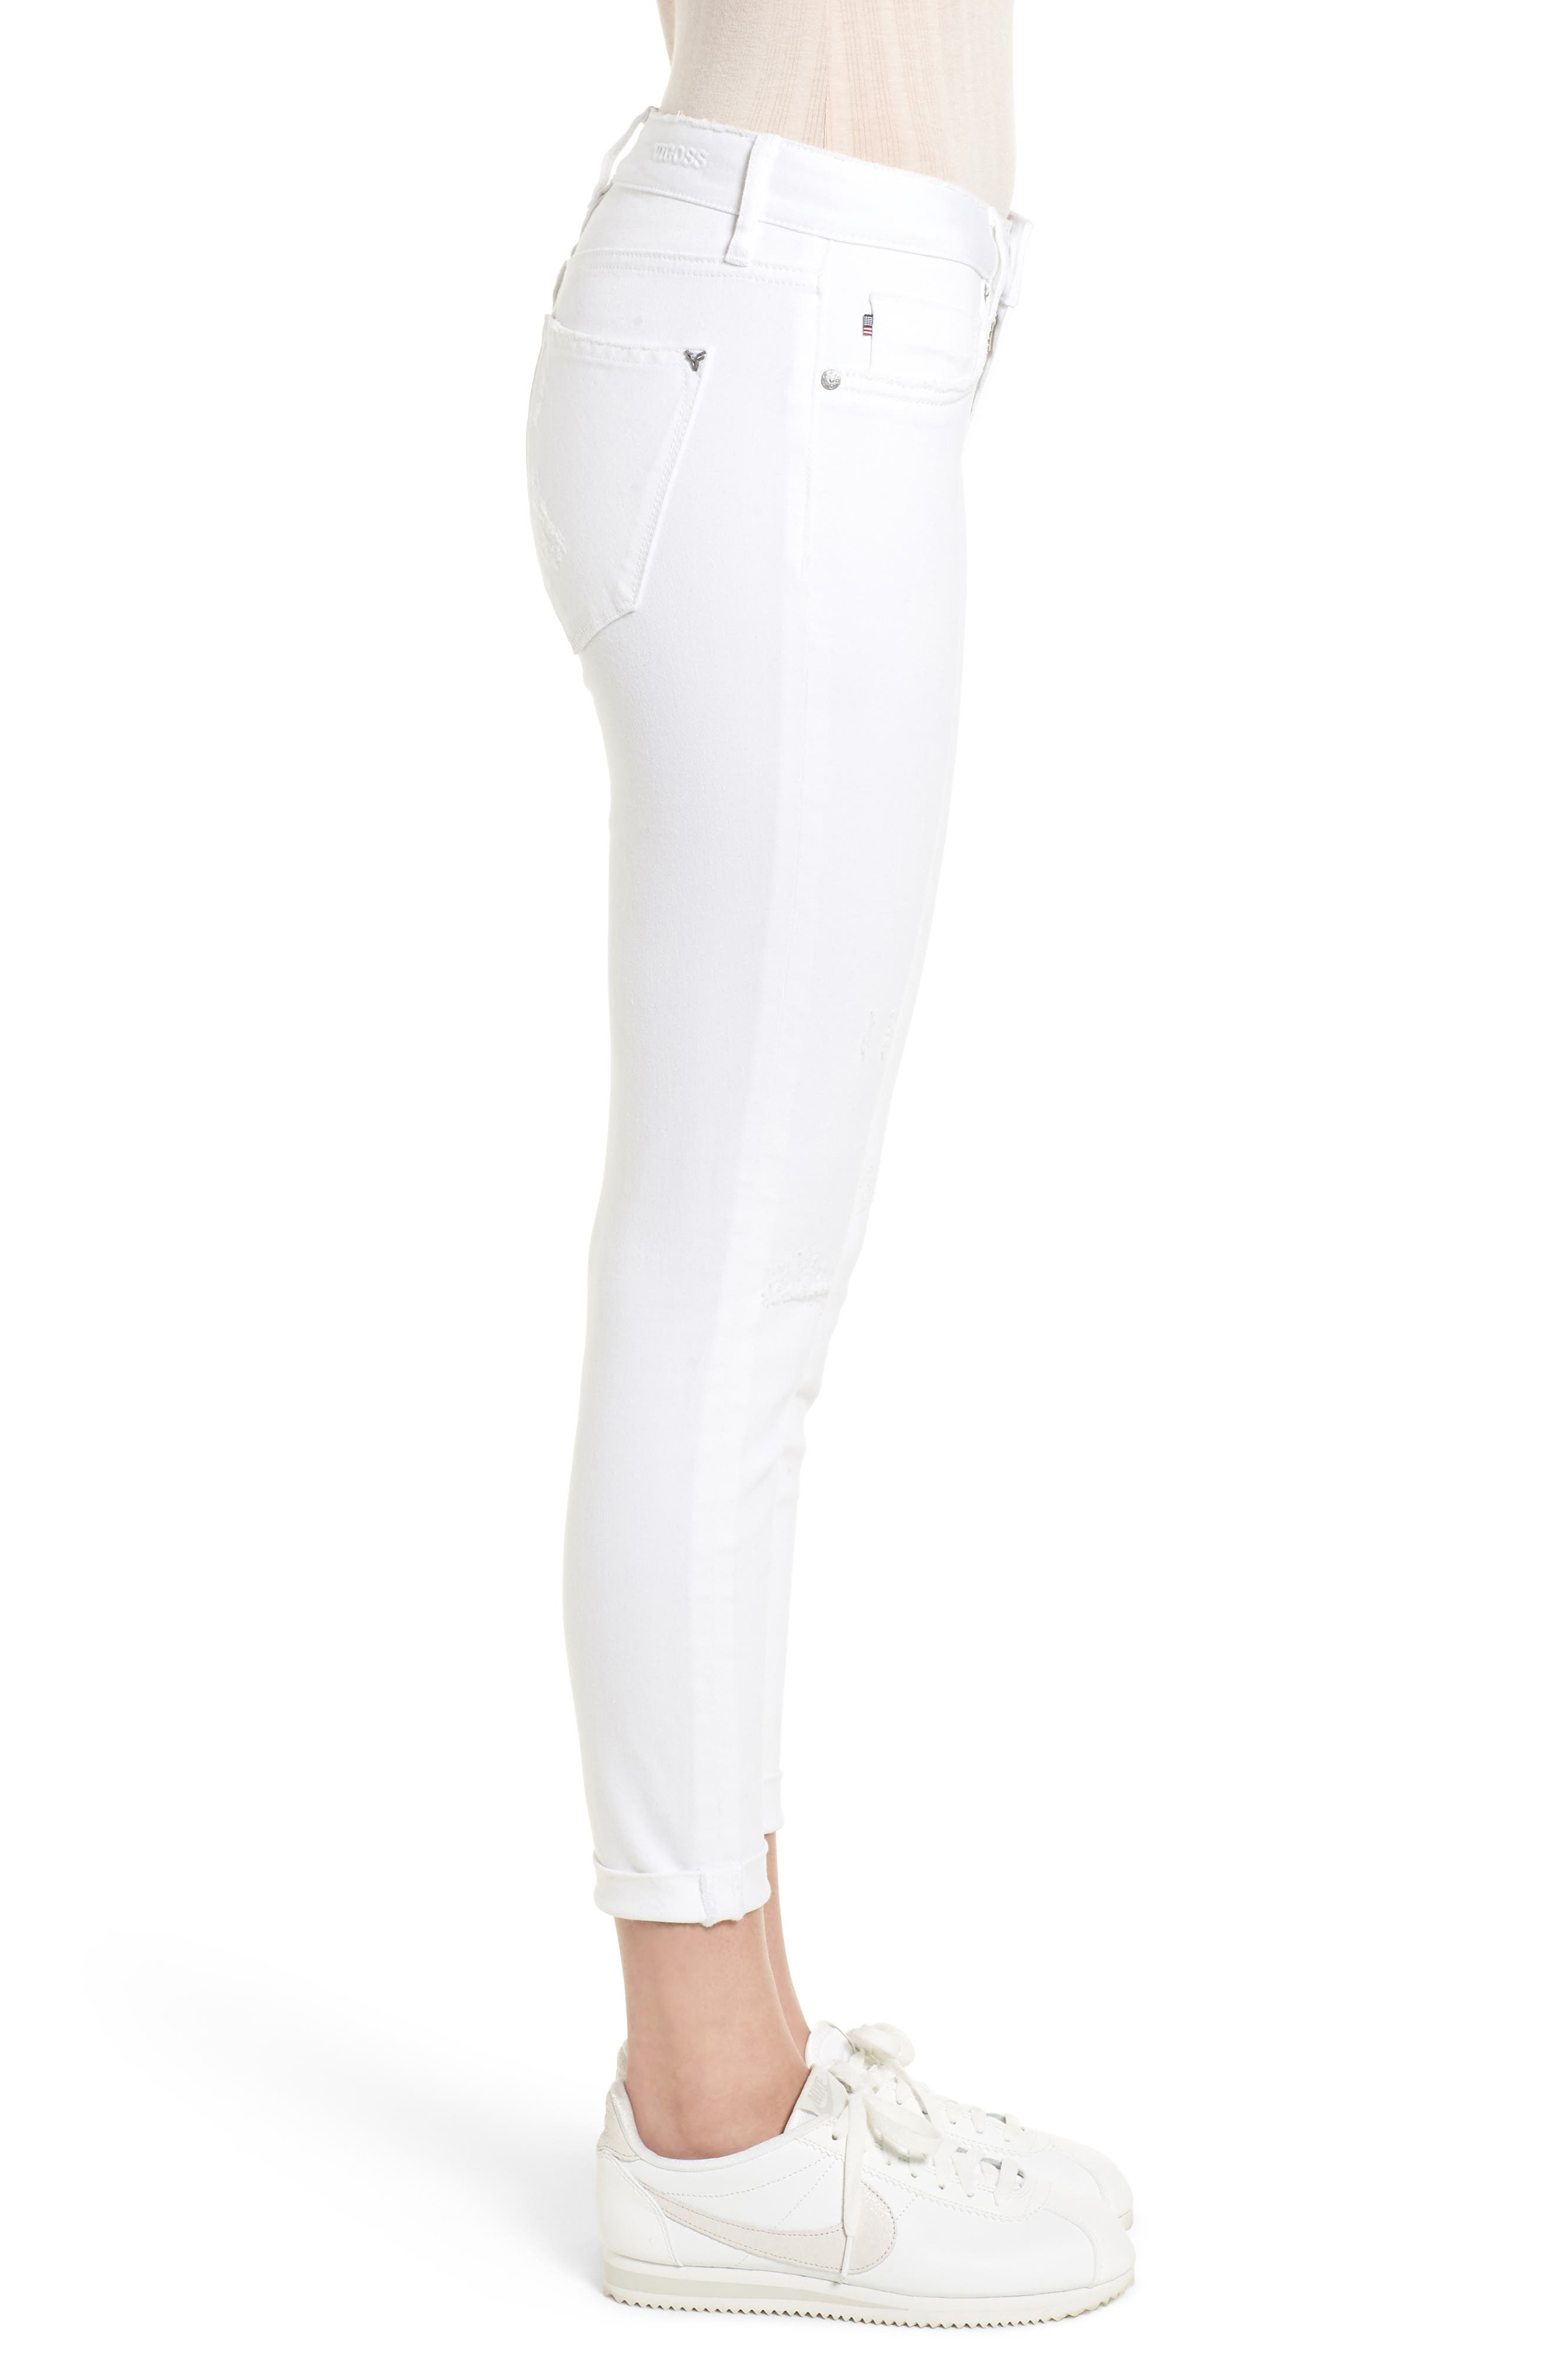 Thompson Tomboy Distressed Cuffed Crop Skinny Jeans,                             Alternate thumbnail 3, color,